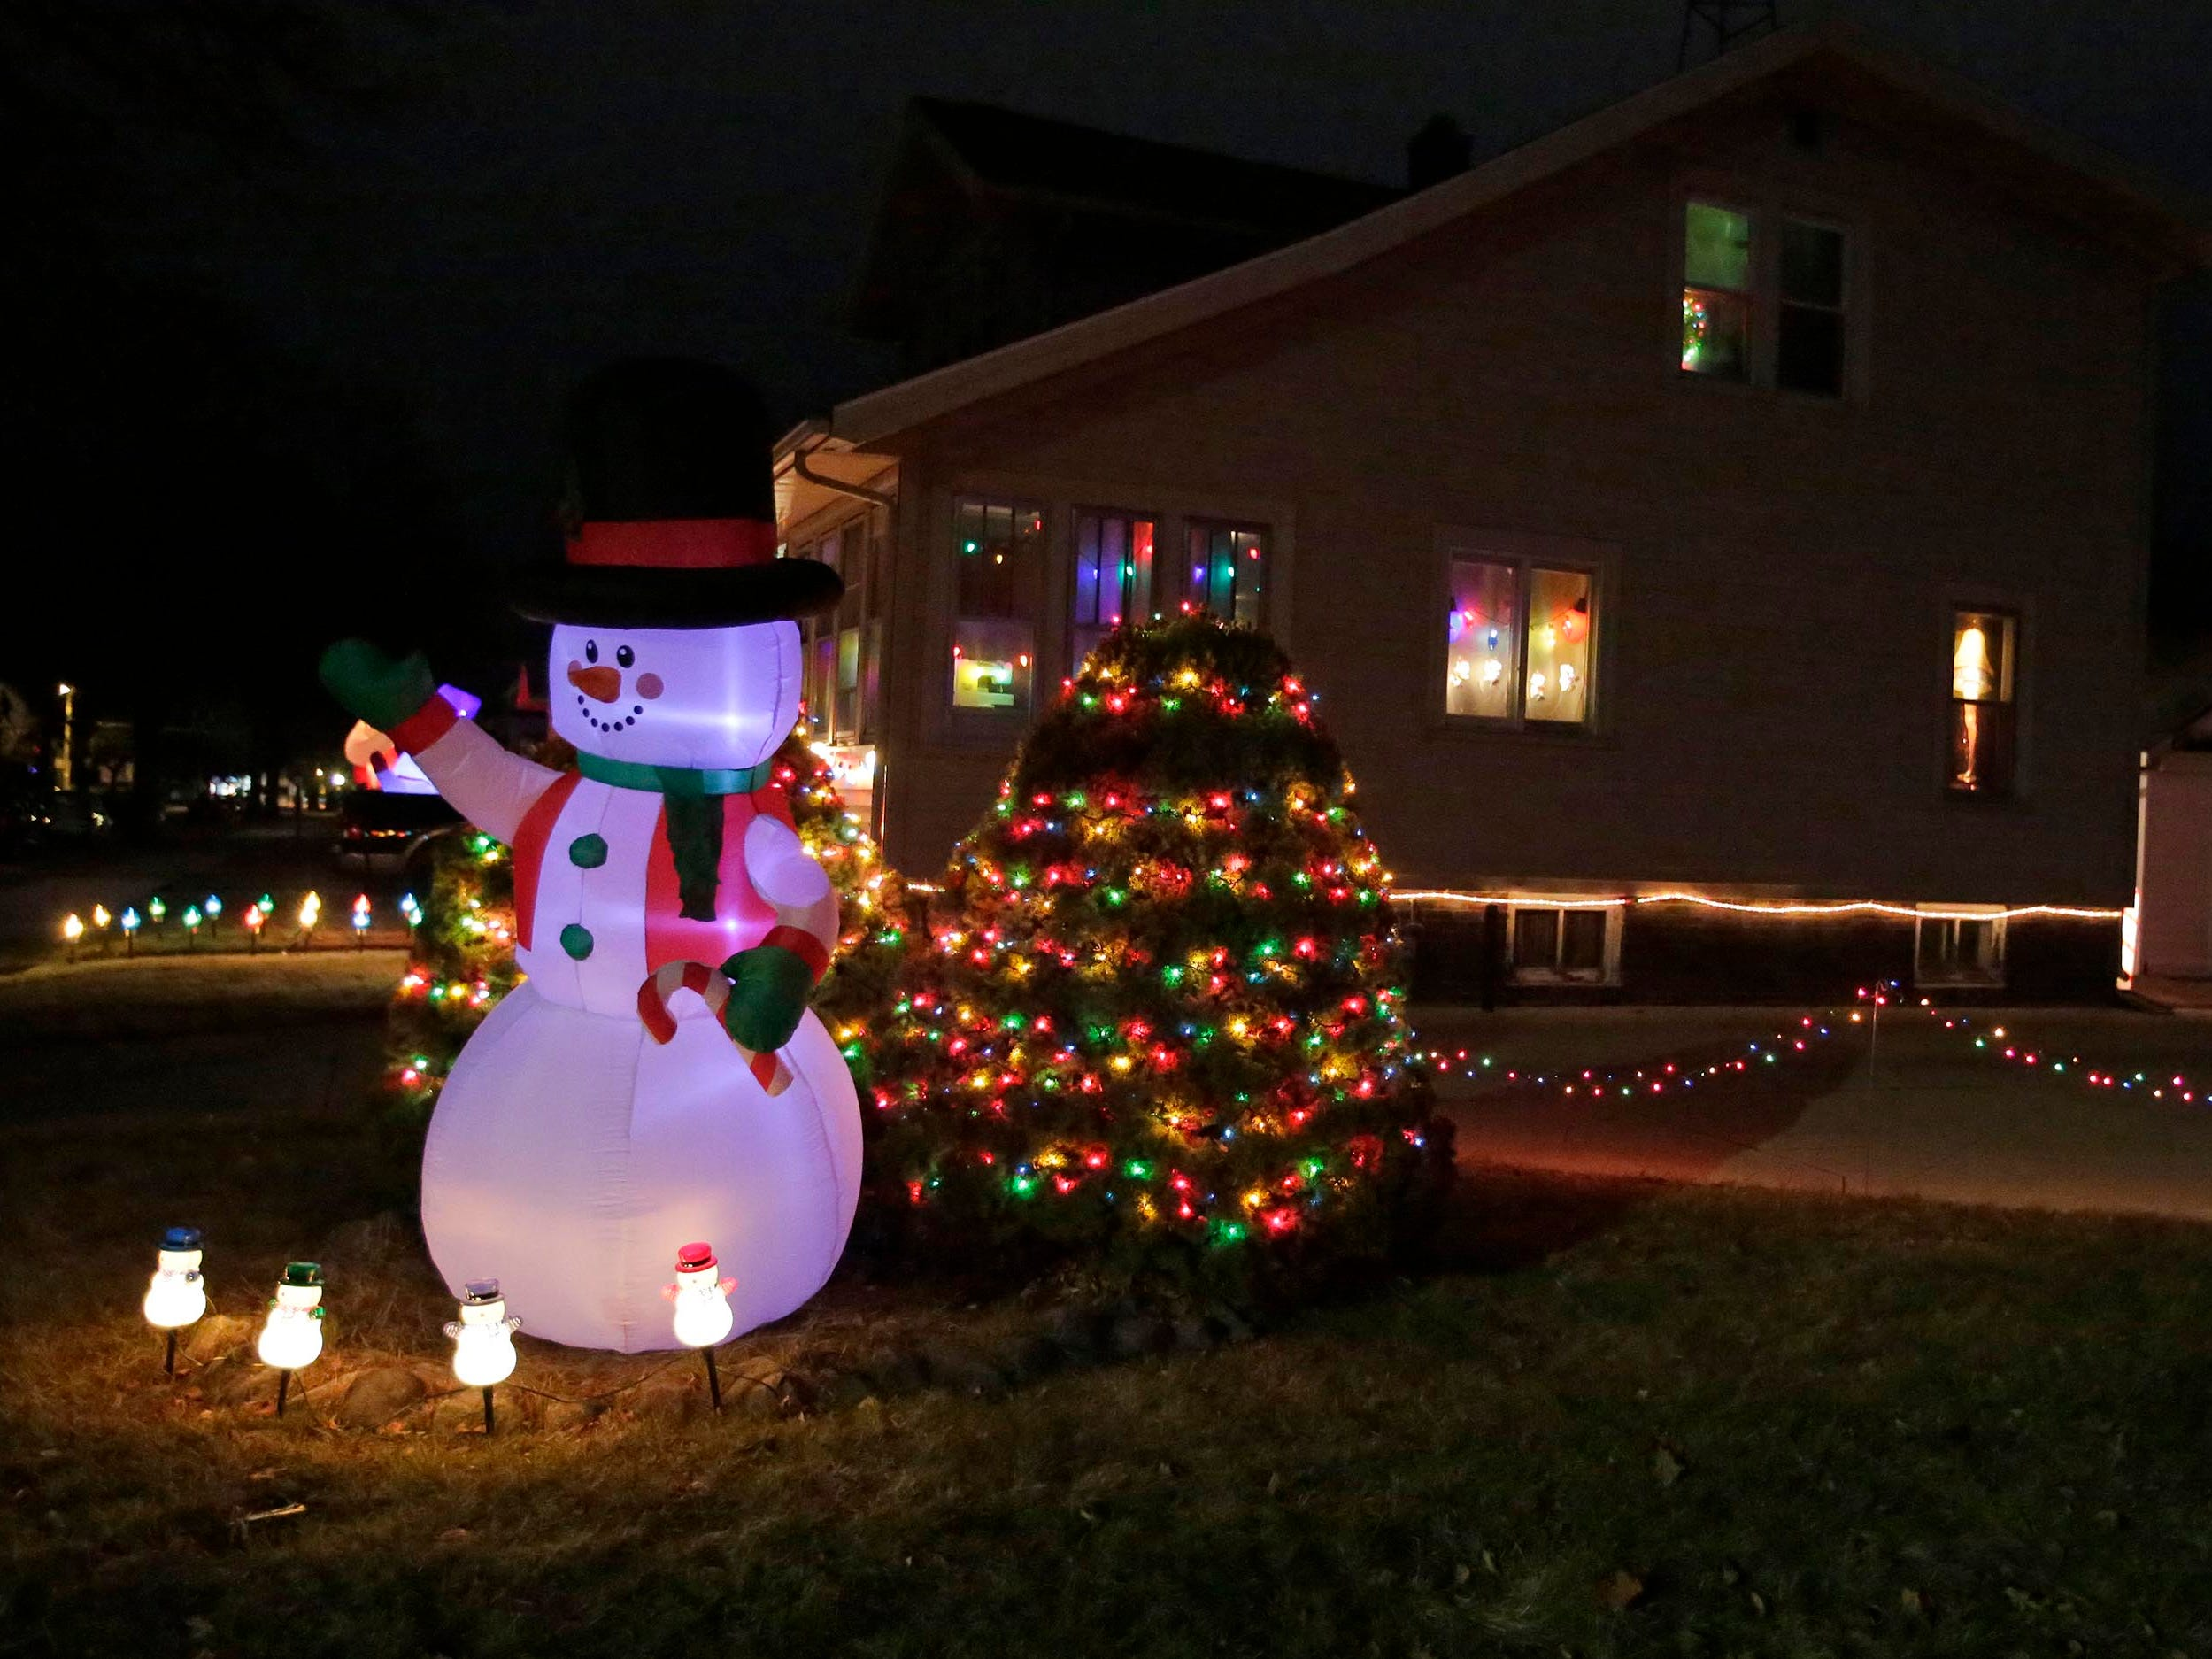 Holiday lights on Geele Avenue, Thursday, December 20, 2018, in Sheboygan, Wis.